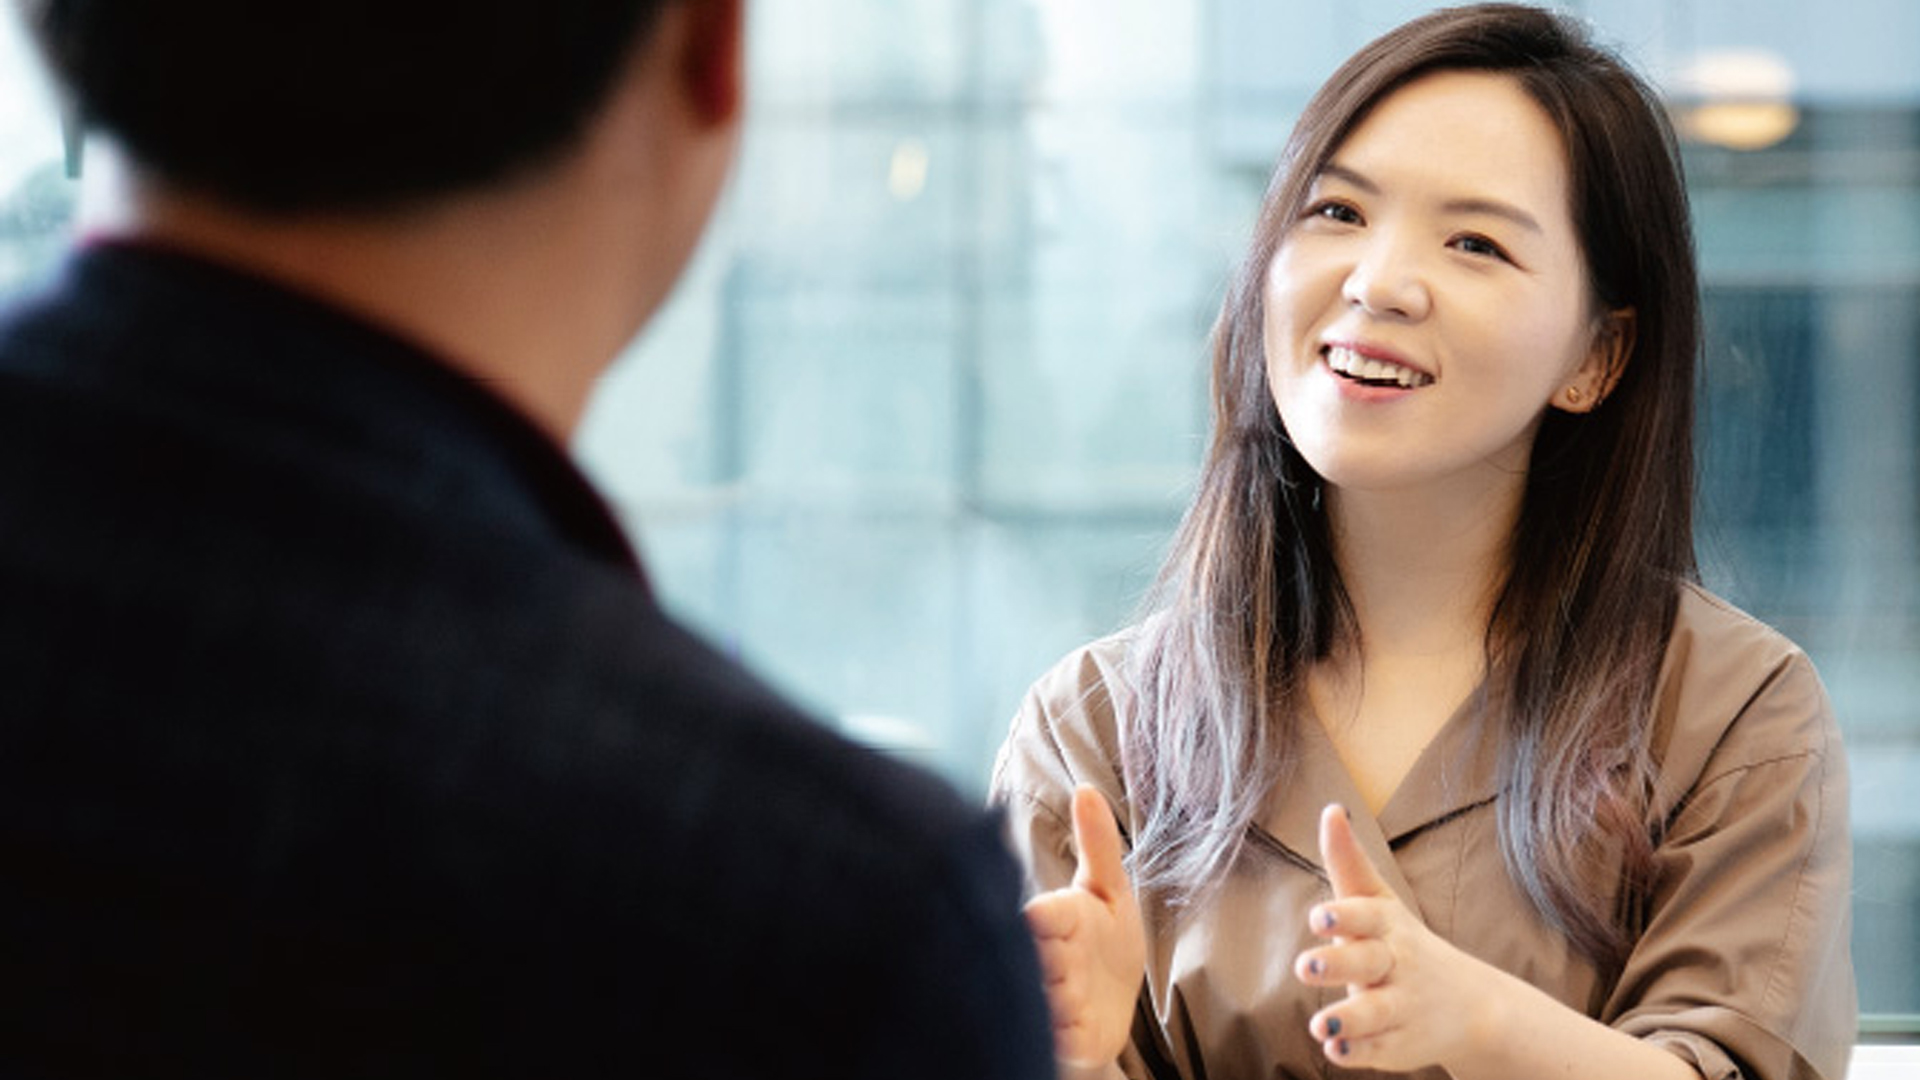 Hanna Kim of Grip smiling while talking to a man